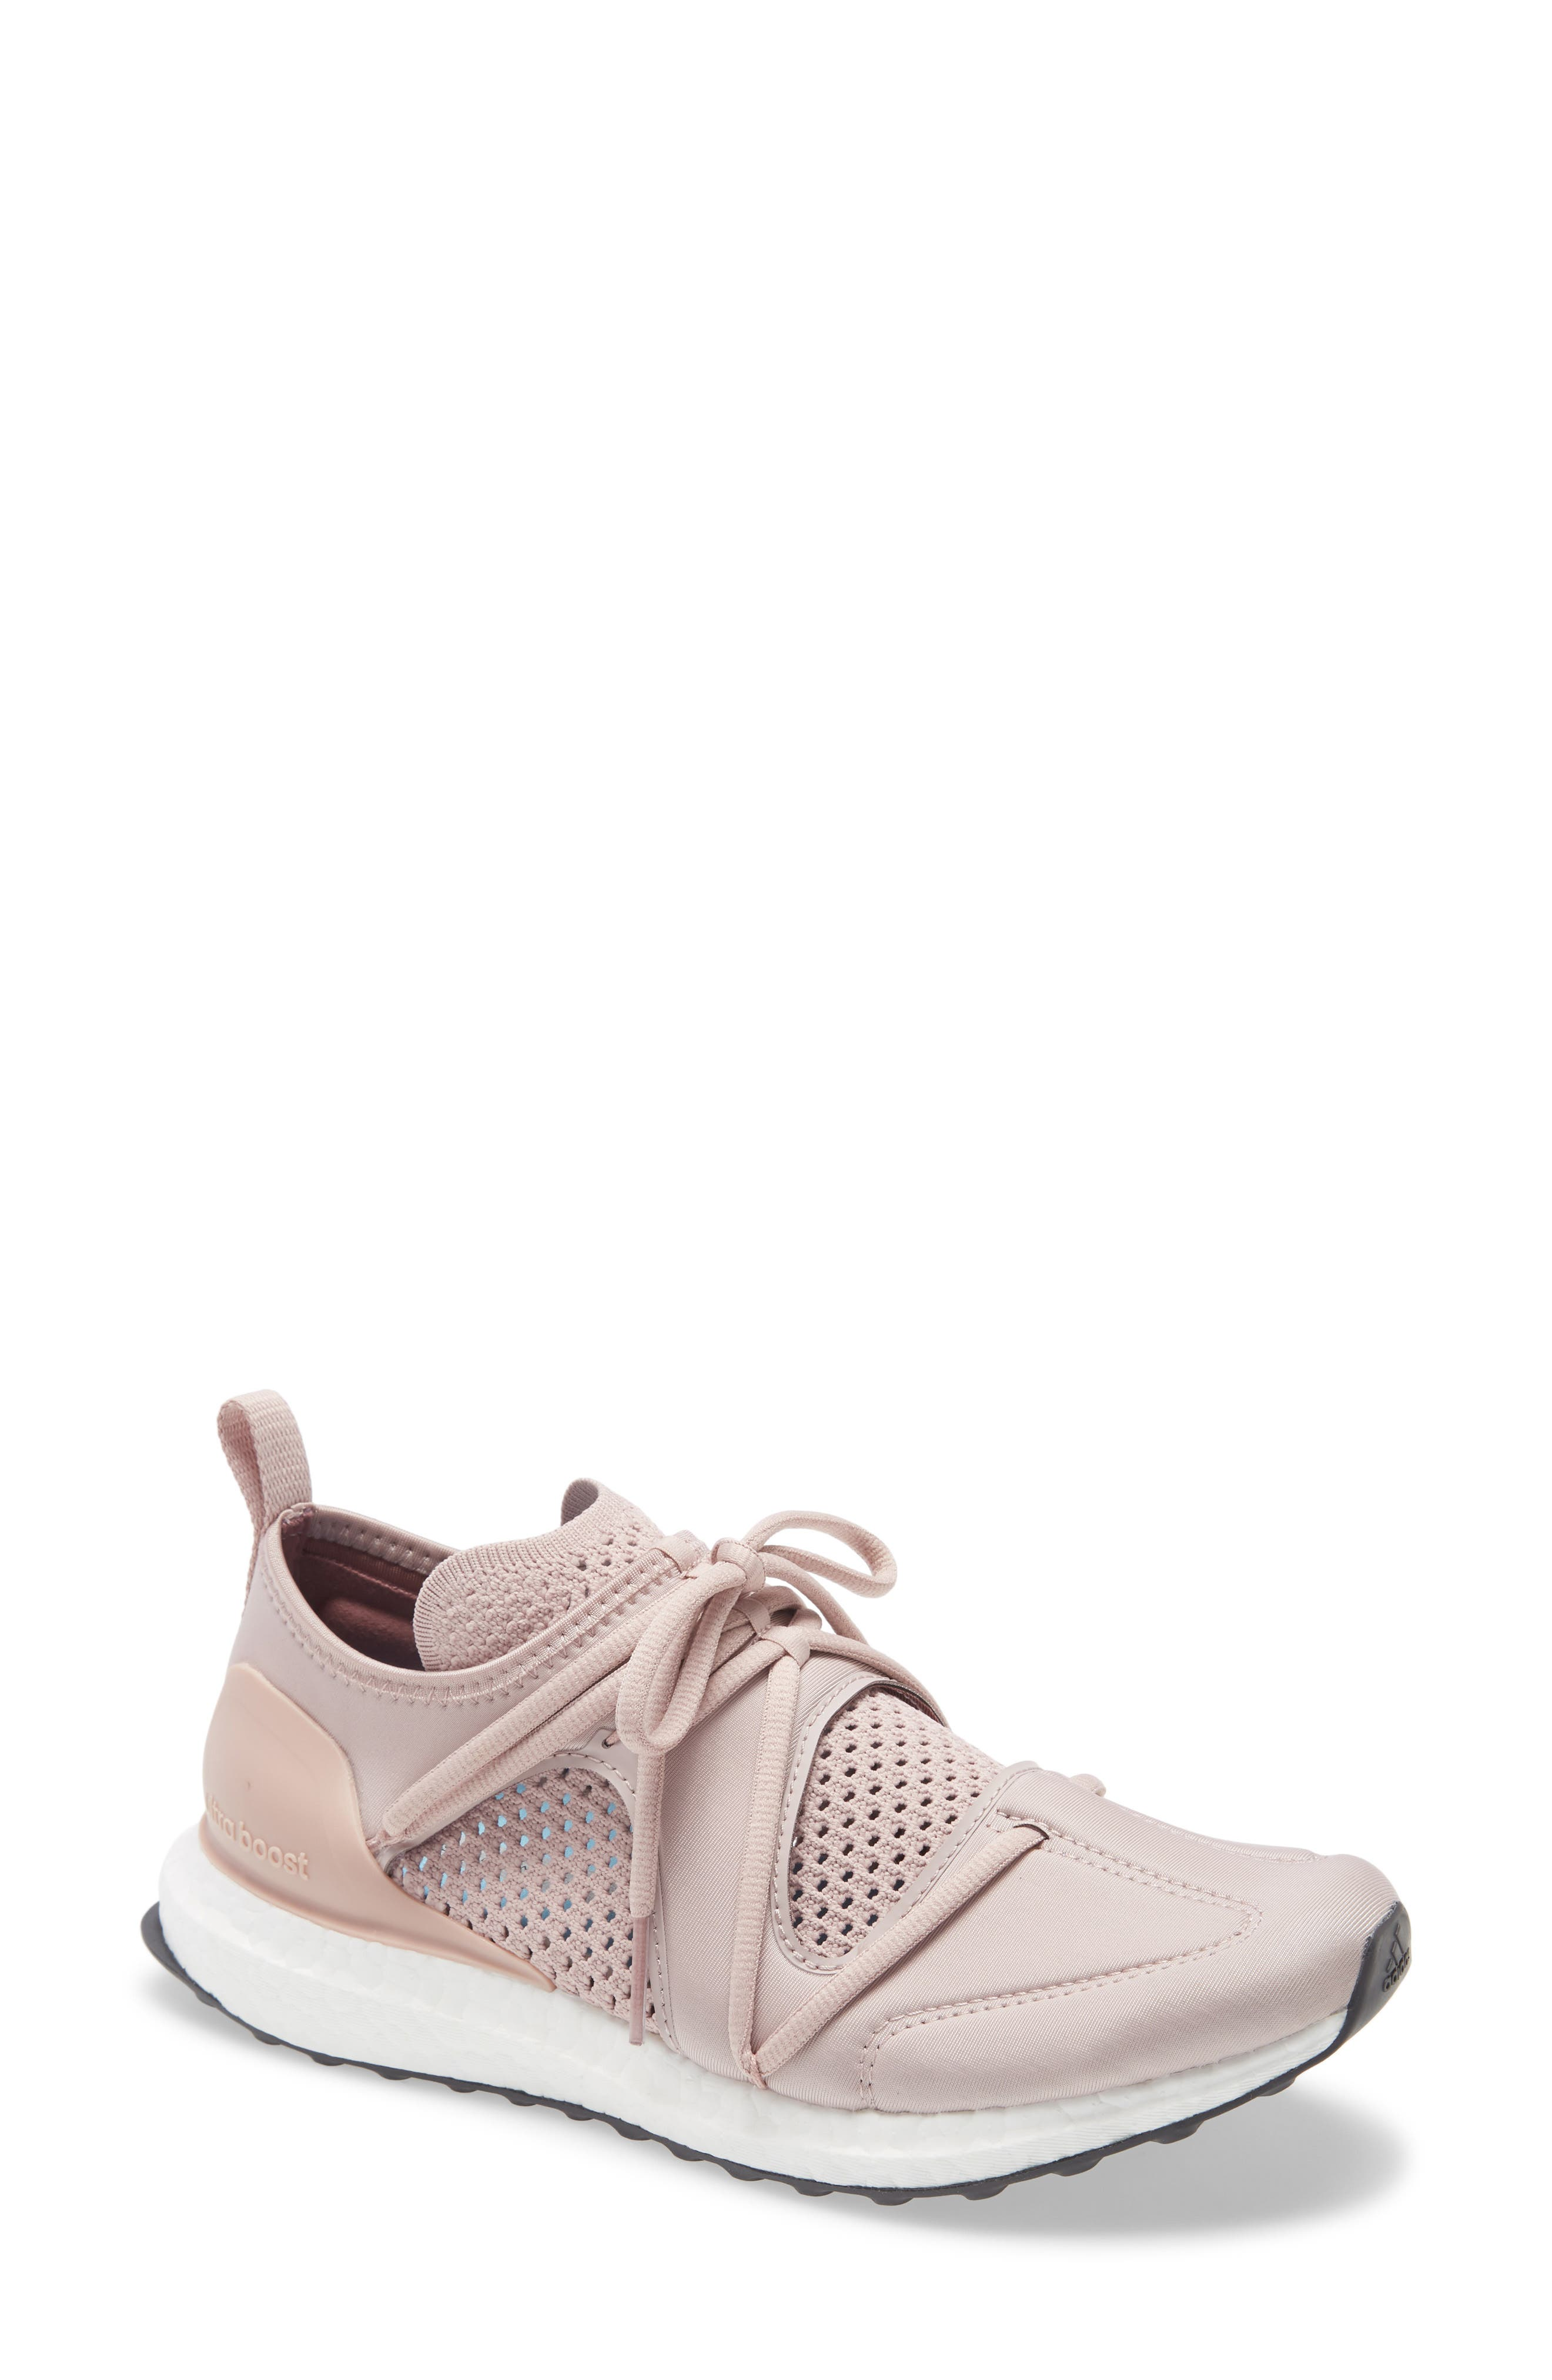 Adidas By Stella Mccartney All Women | Nordstrom